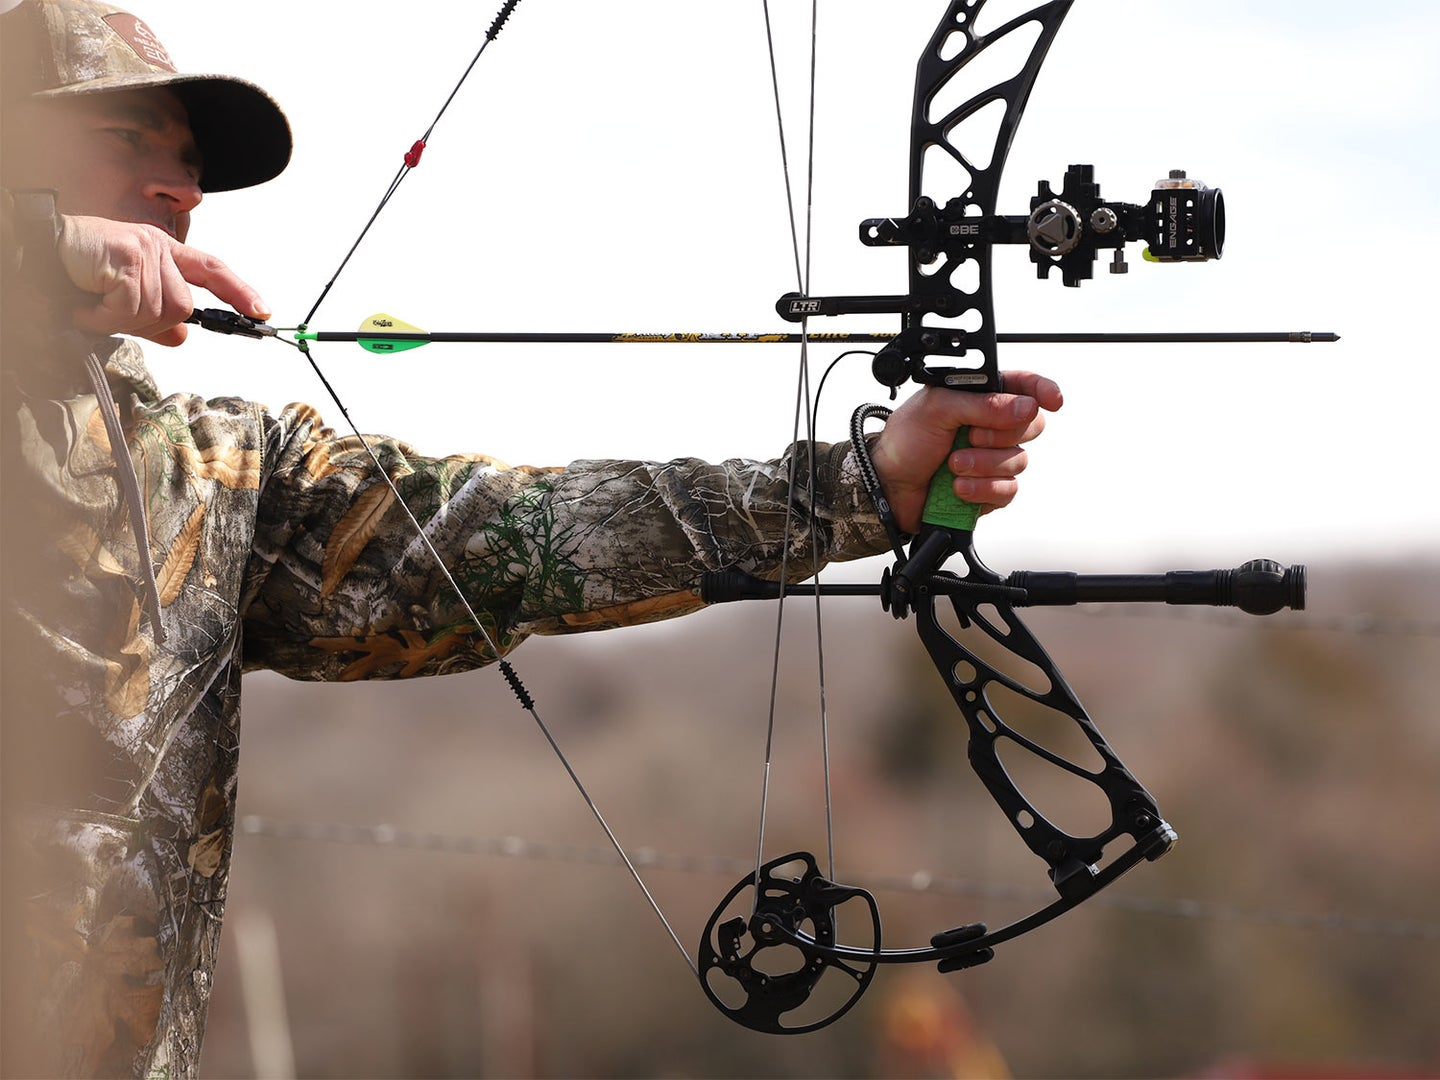 A bowhunter drawing back on a compound bow.